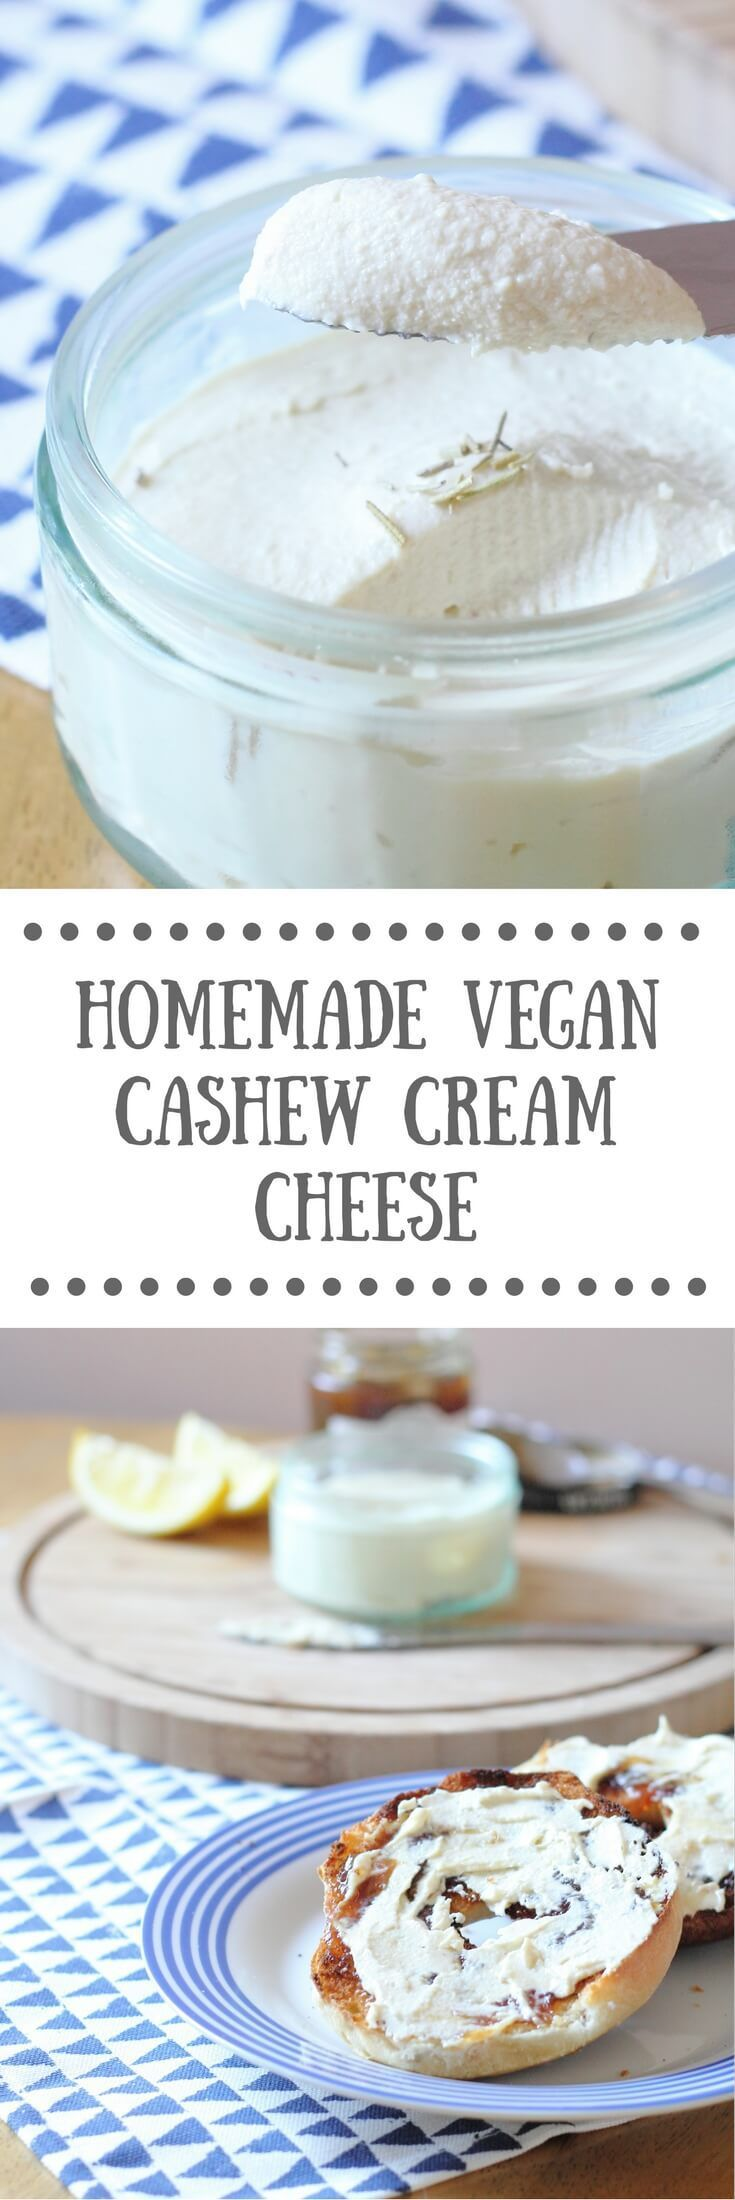 Homemade Vegan Cashew Cream Cheese - Vegan Recipe                                                                                                                                                                                 More